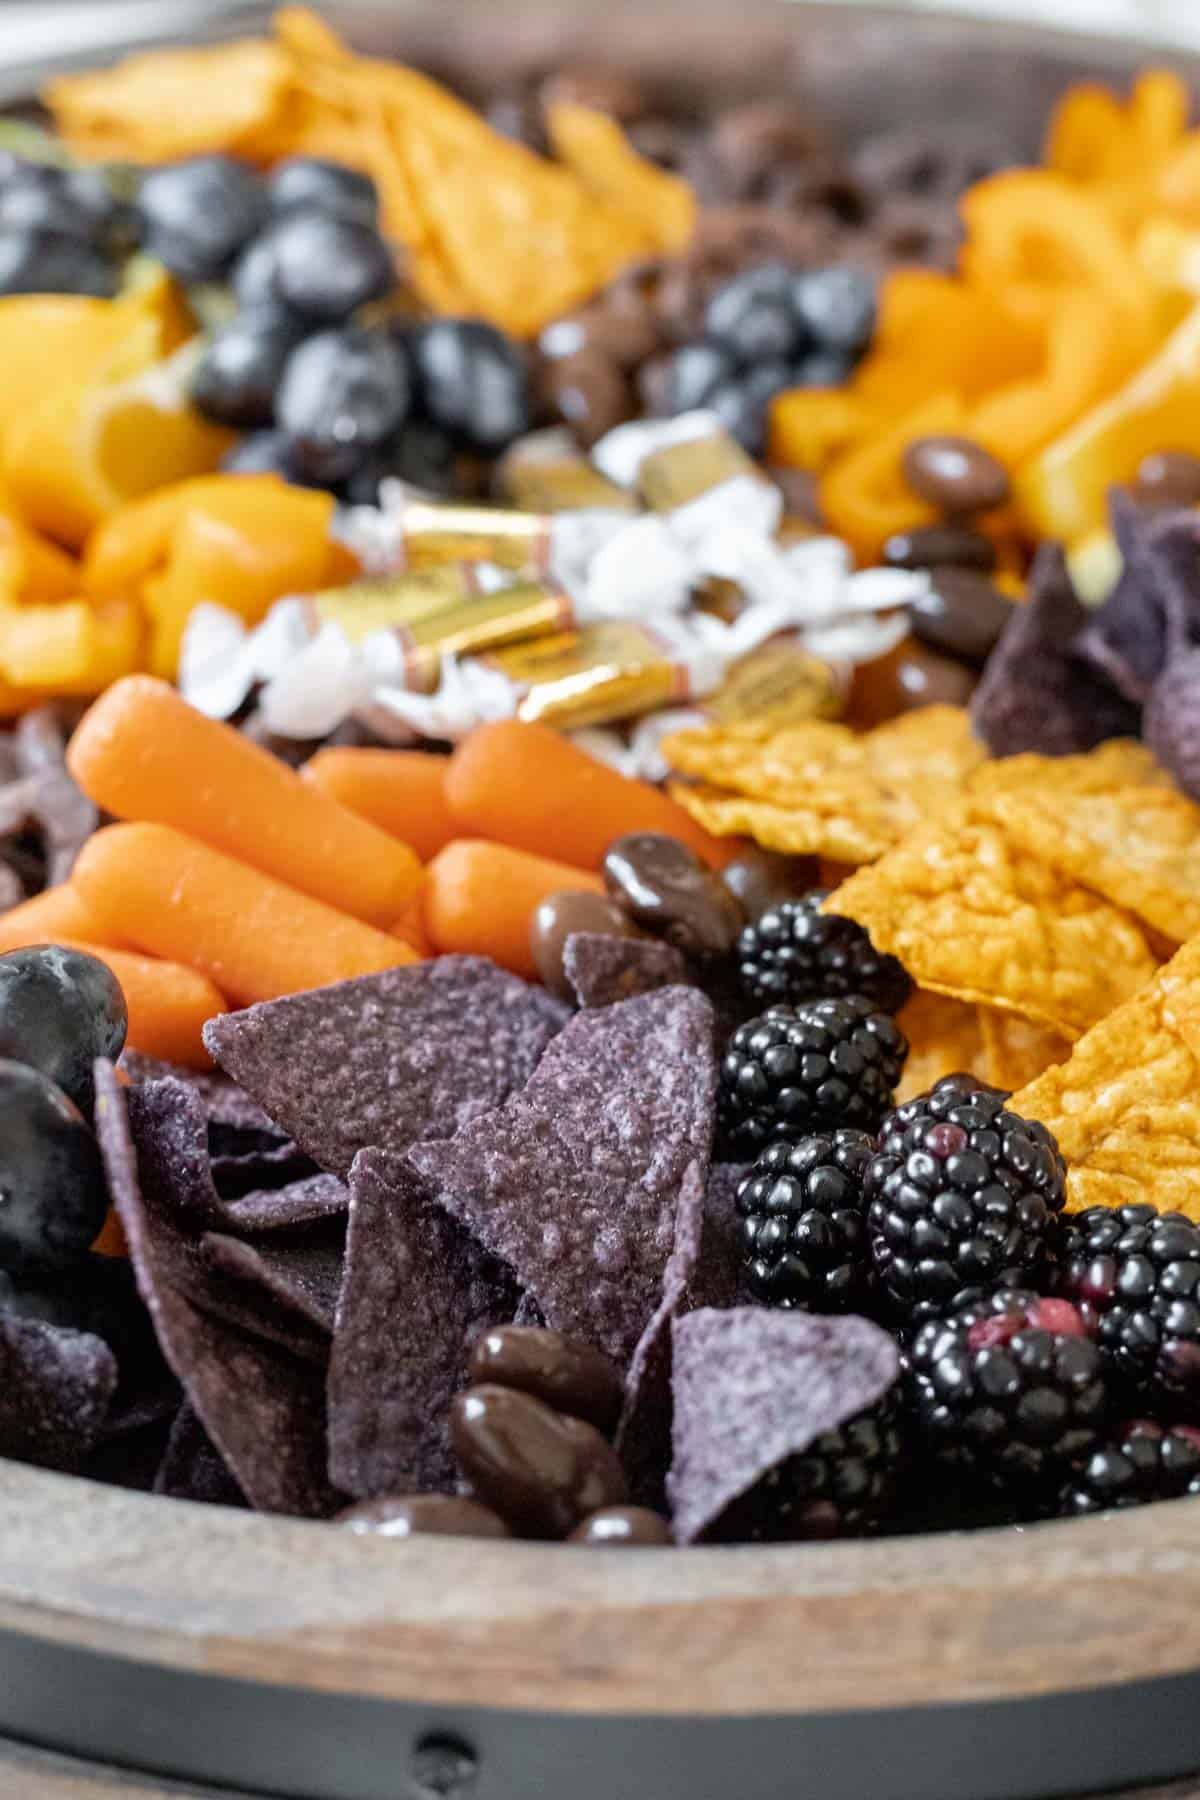 """A closeup view of all the orange and """"black"""" foods arranged on a wooden board."""